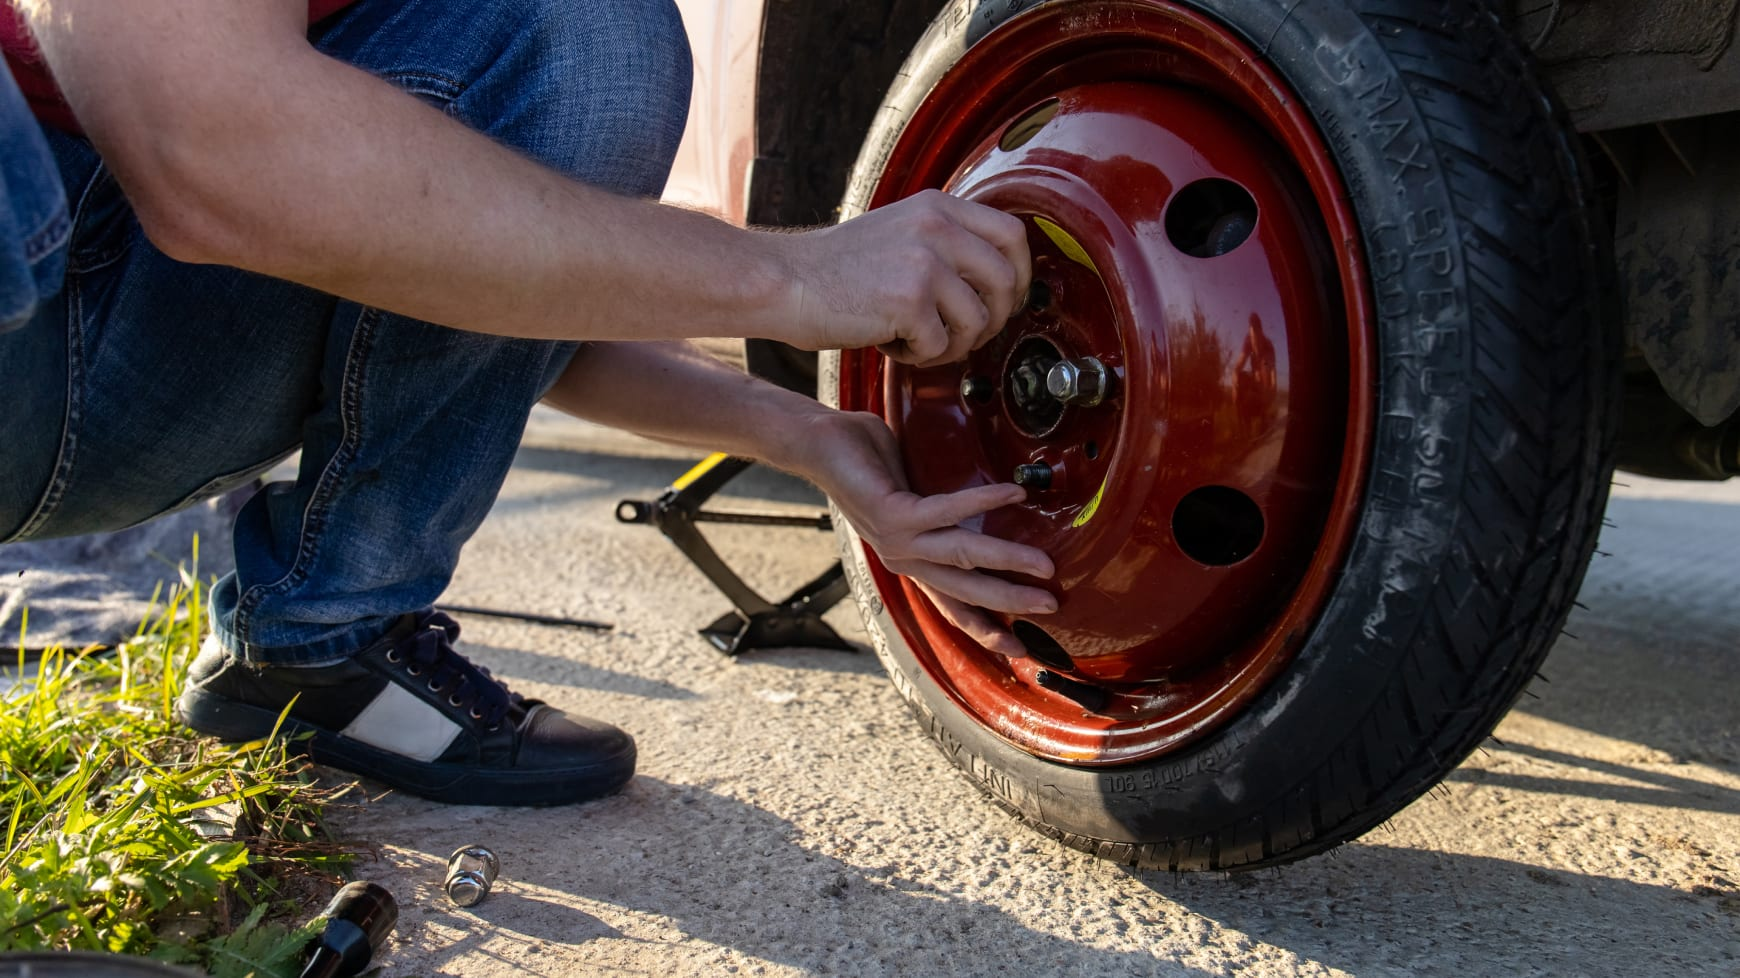 A Stranded Driver Putting on a Temp-Spare Tire